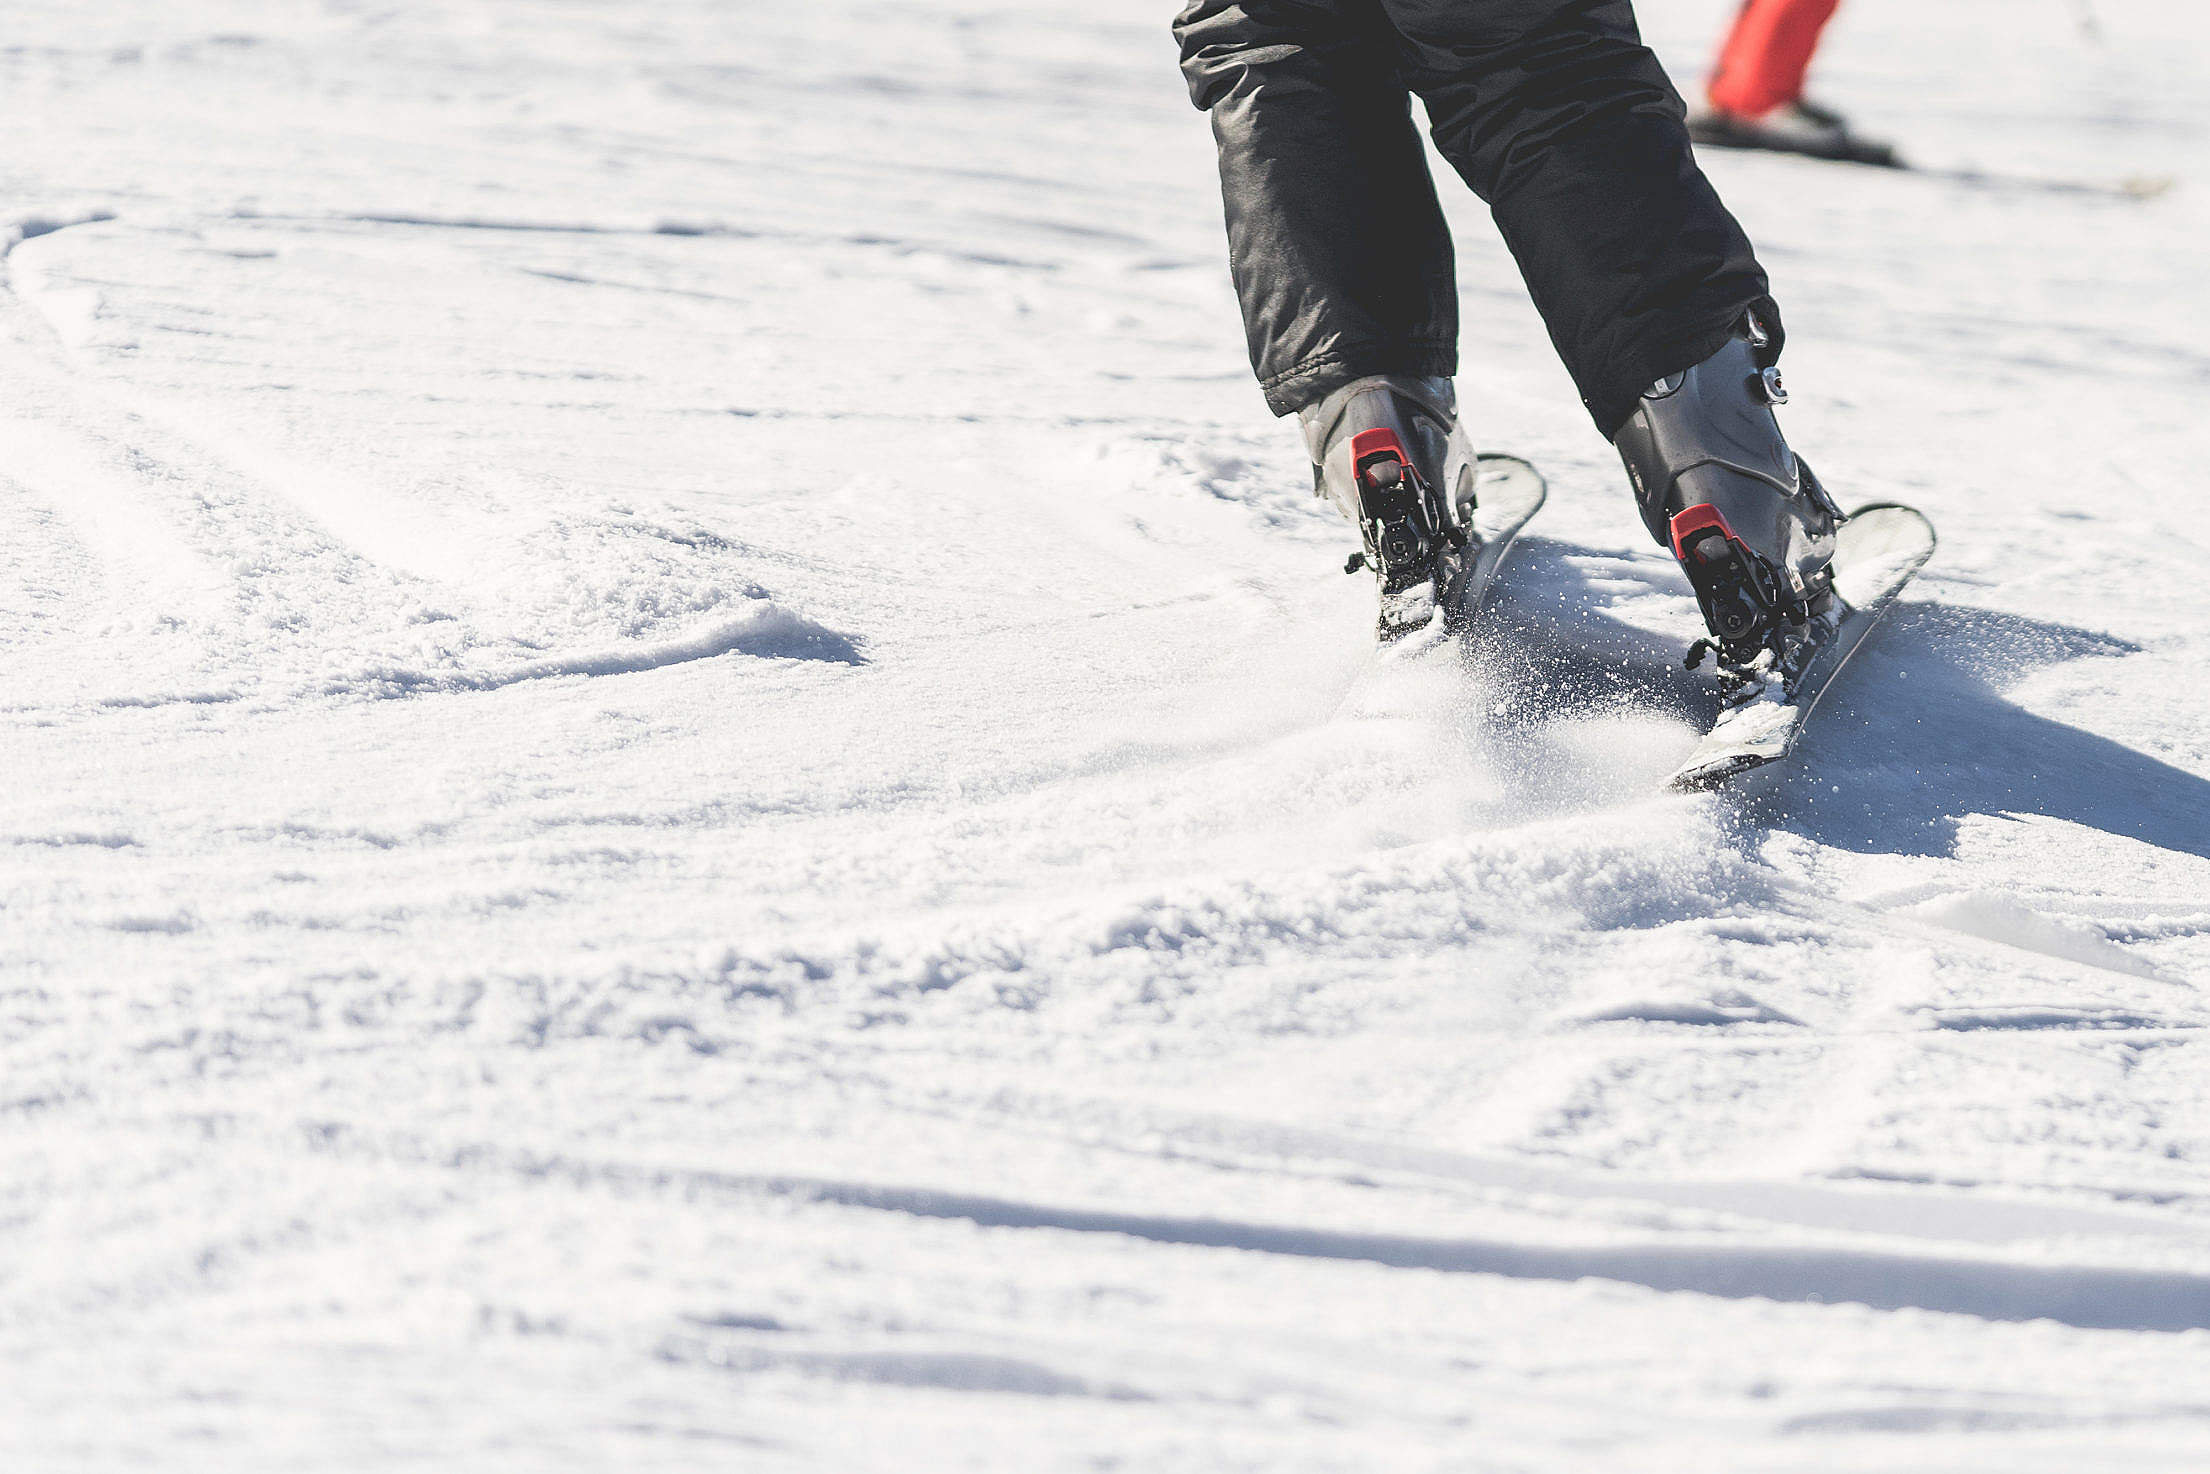 Skiing Snow And Ski Close Up Free Stock Photo